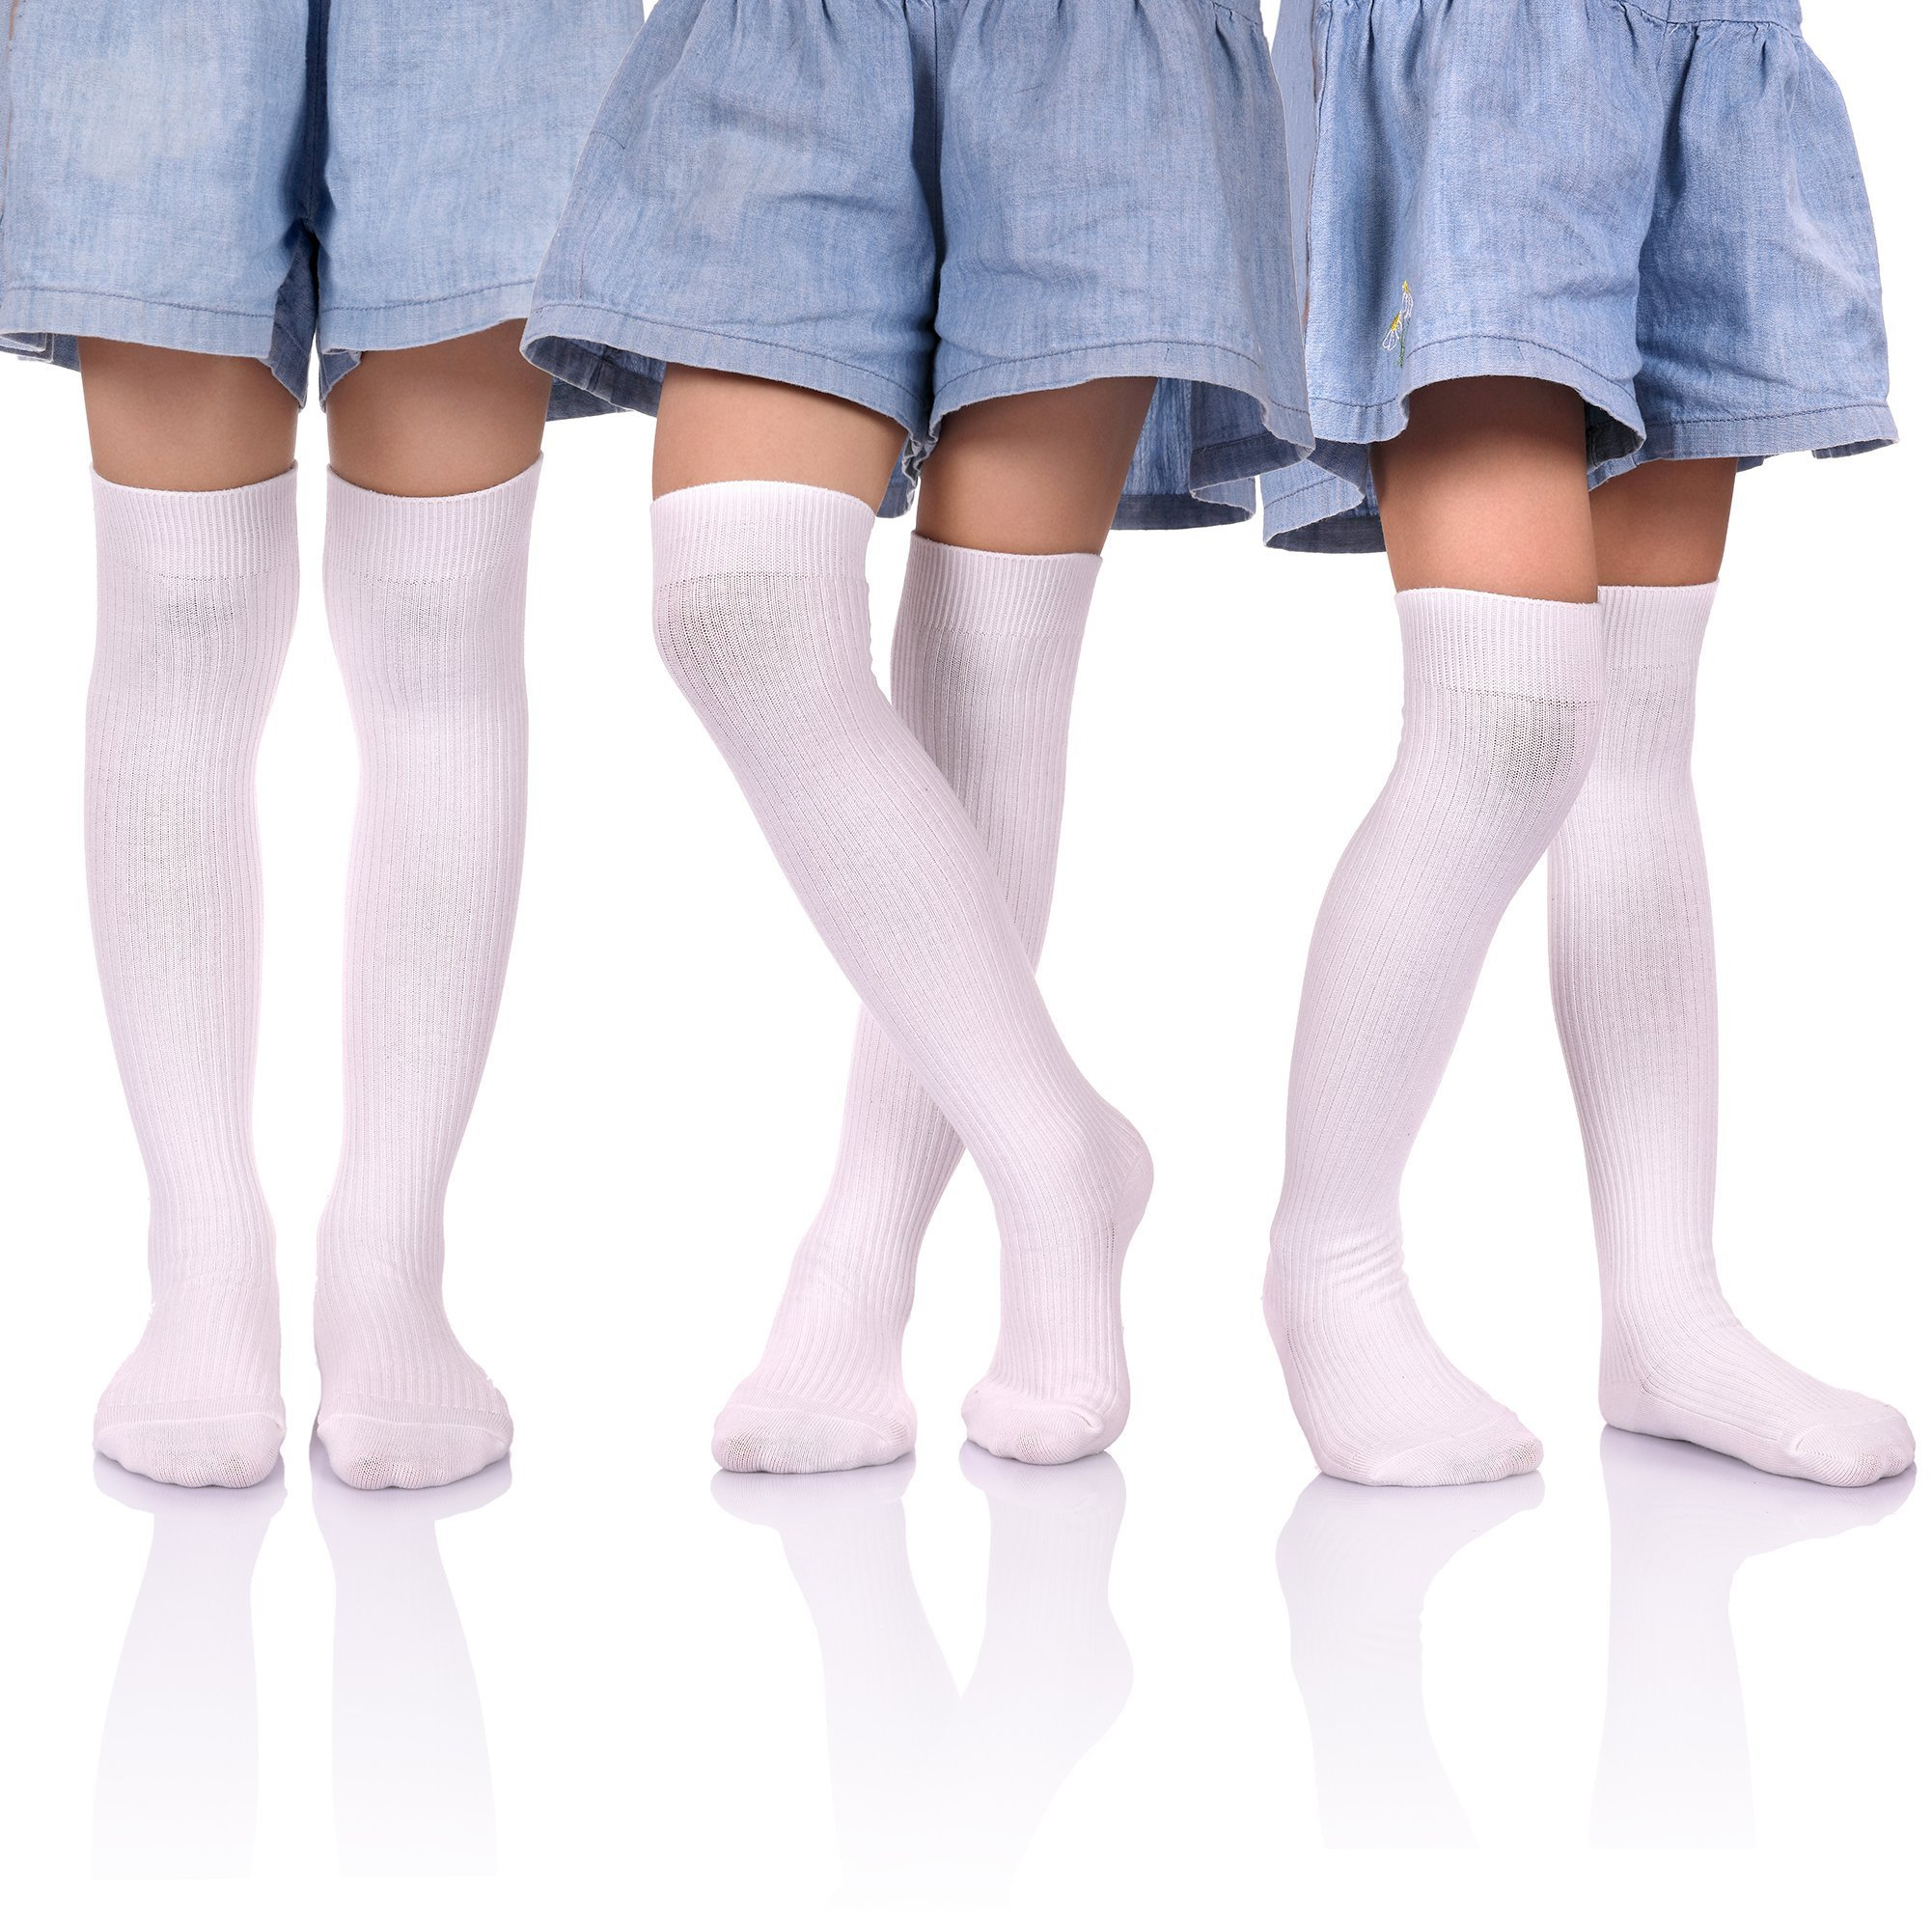 HERHILLY 3 Pack School Uniform Socks - Classic Stripe Cotton Over Knee-high Socks for Big Girls 3-12 Year old (9-12 Year Old, 3 Pack White) by HERHILLY (Image #1)